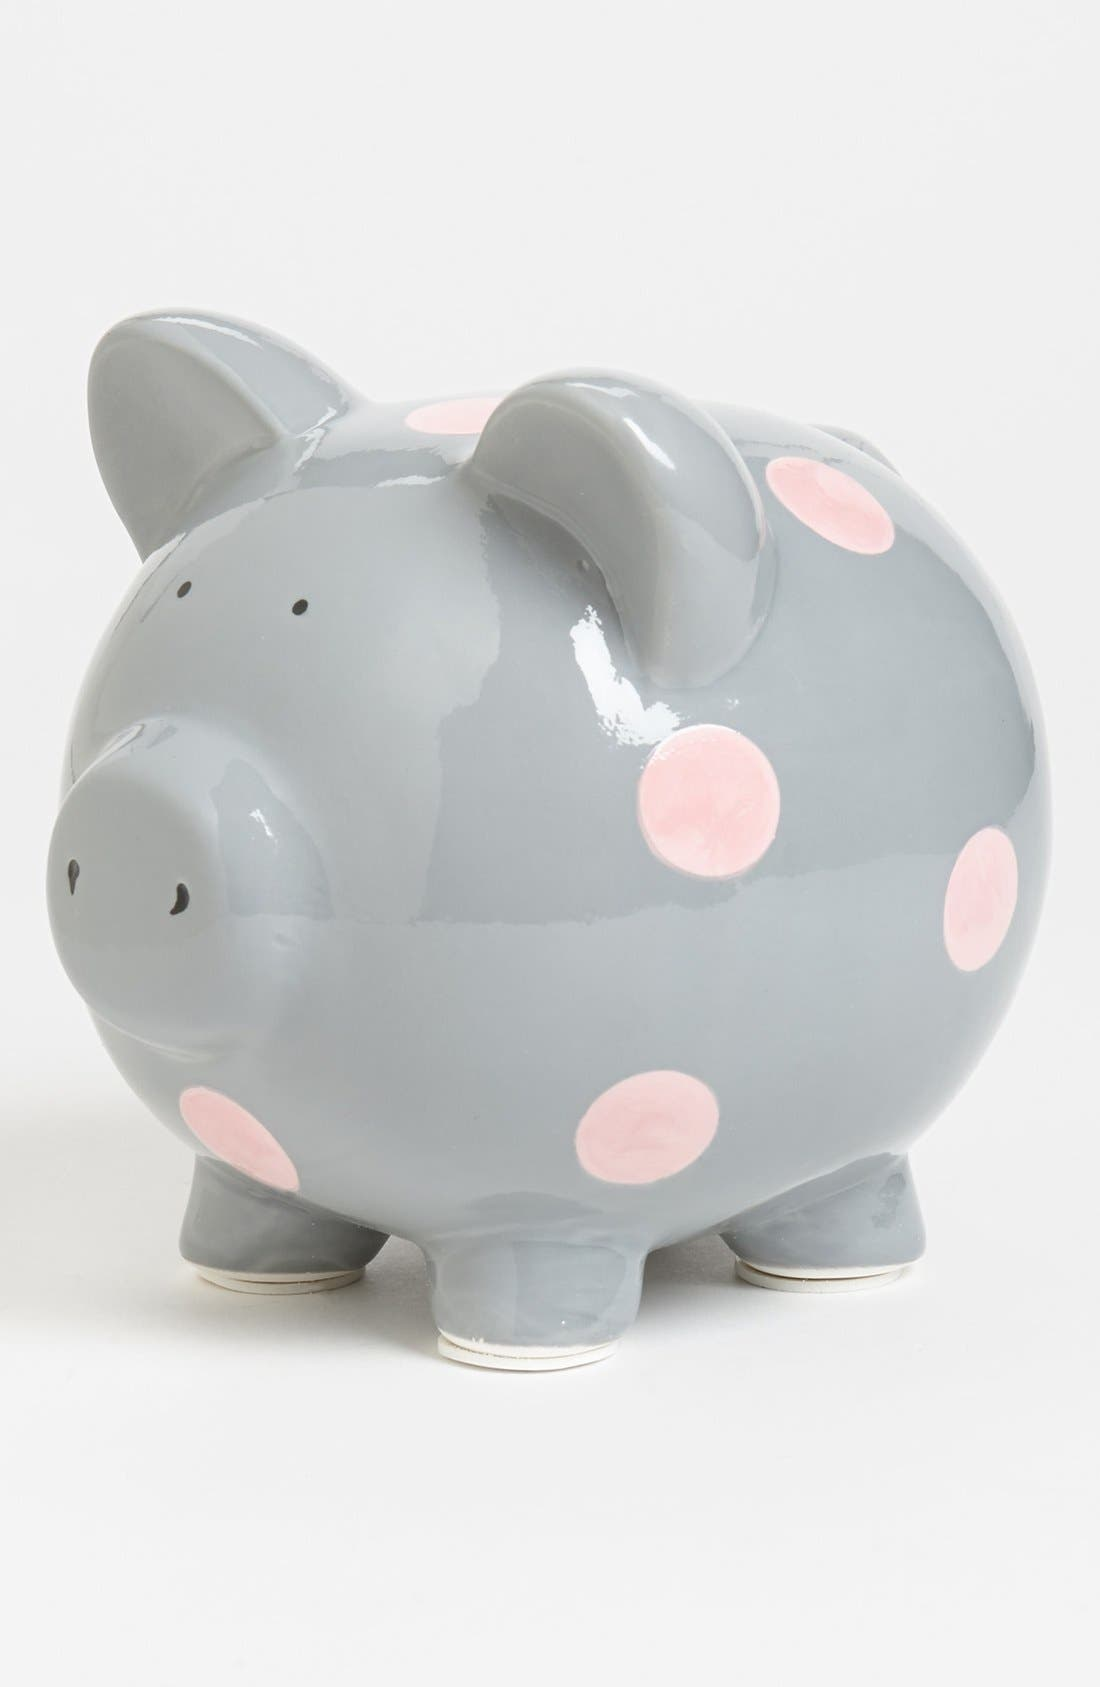 Alternate Image 1 Selected - Elegant Baby 'Classic' Ceramic Piggy Bank